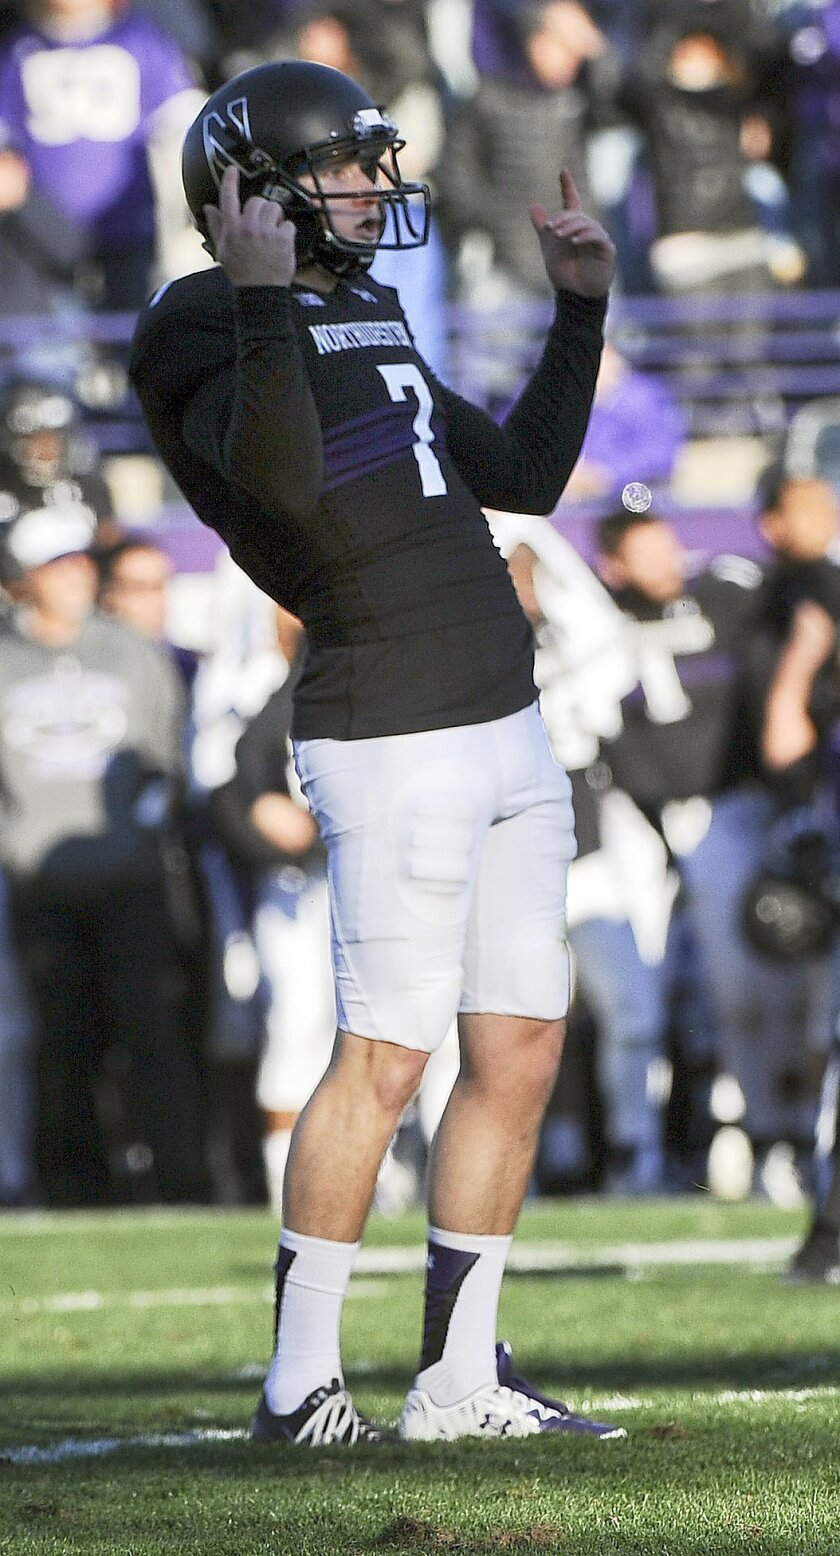 Northwestern place kicker Jack Mithchell (7) reacts after kicking the game-winning field goal in the closing second of the second half of an NCAA college football game against Penn State in Evanston, Ill.,  Saturday, Nov. 7, 2015.  Northwestern beat Penn State 23-21. (AP Photo/Matt Marton)